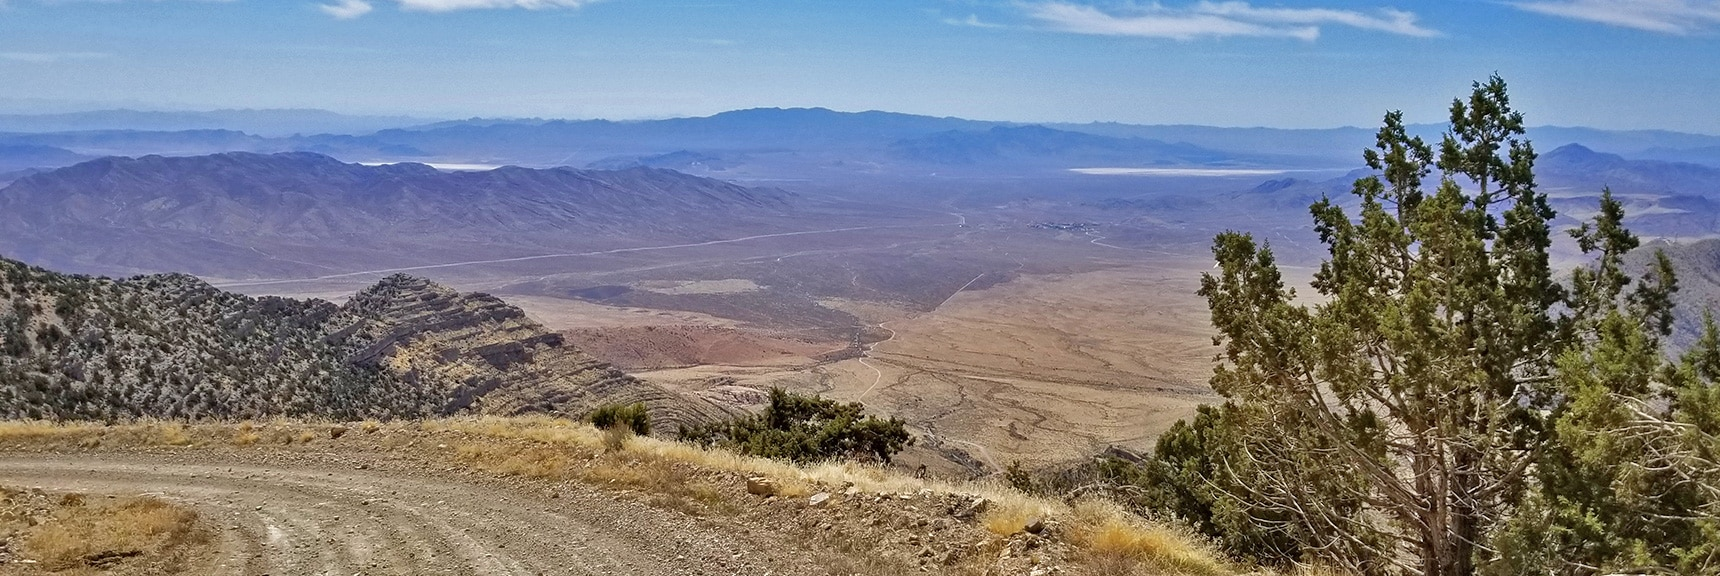 Spectacular View Back Down the Road, Valley and Mountains Beyond. | Potosi Mountain Spring Mountains Nevada